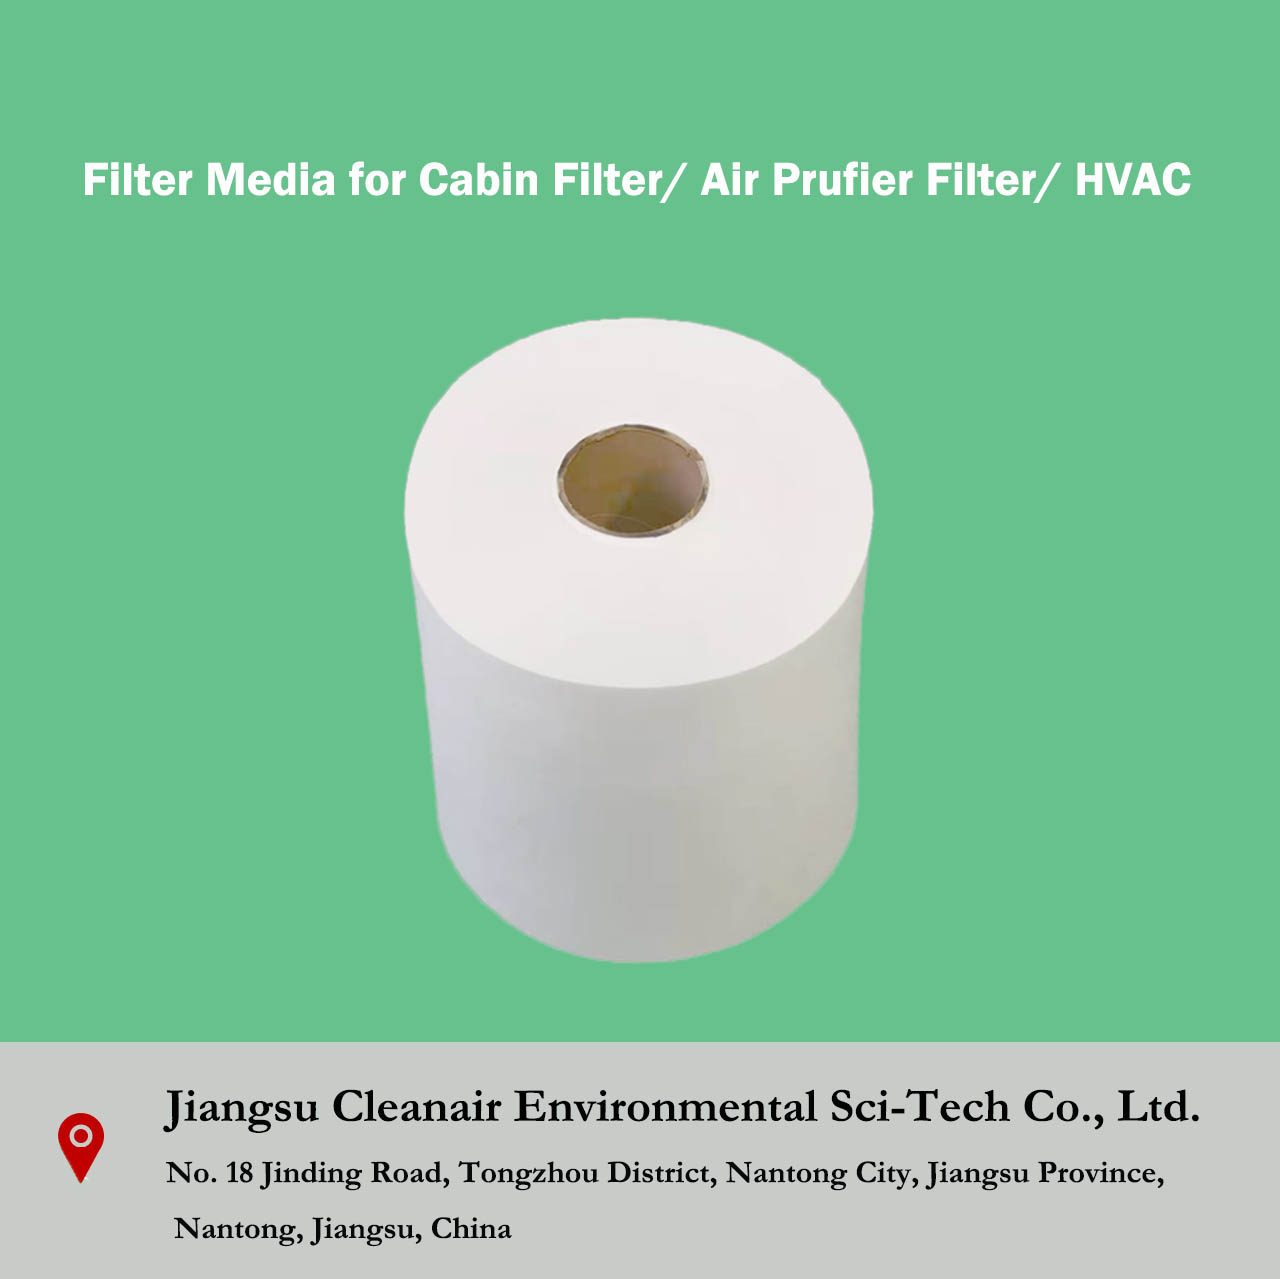 Filter Media for Cabin Filter/ Air Prufier Filter/ HVAC